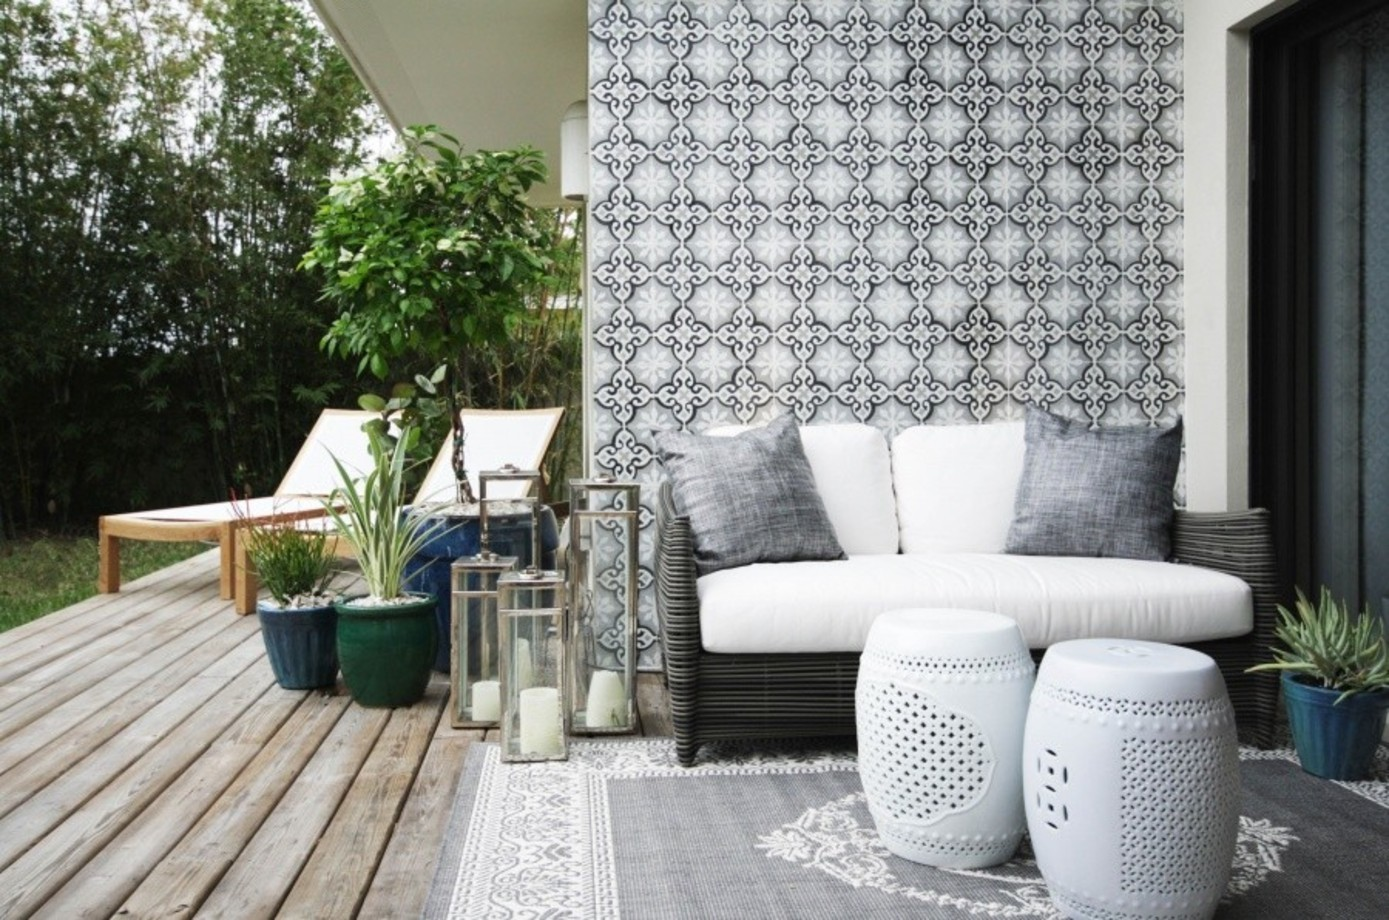 Superieur Get The Look: A Stylish Indoor/Outdoor Patio   Decorating   Lonny